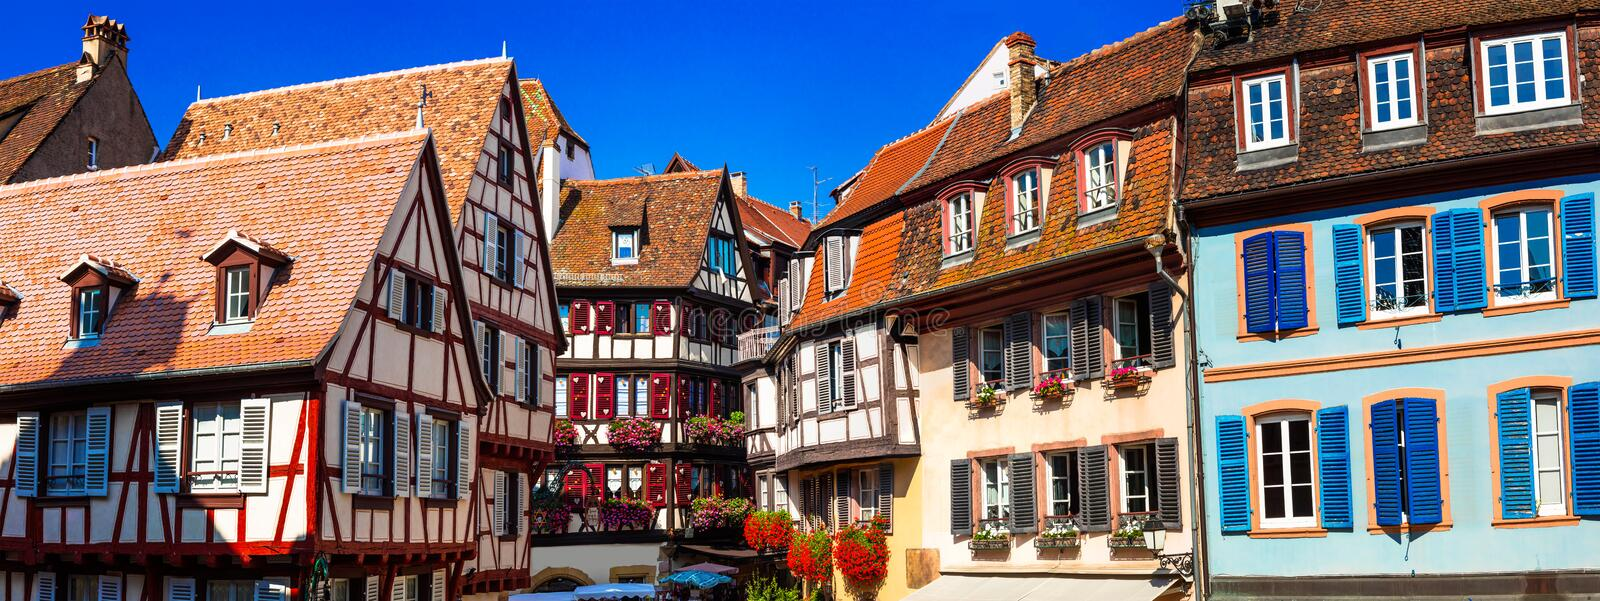 Amazing Colmar -traditional floral town in Alsace region,France royalty free stock photo